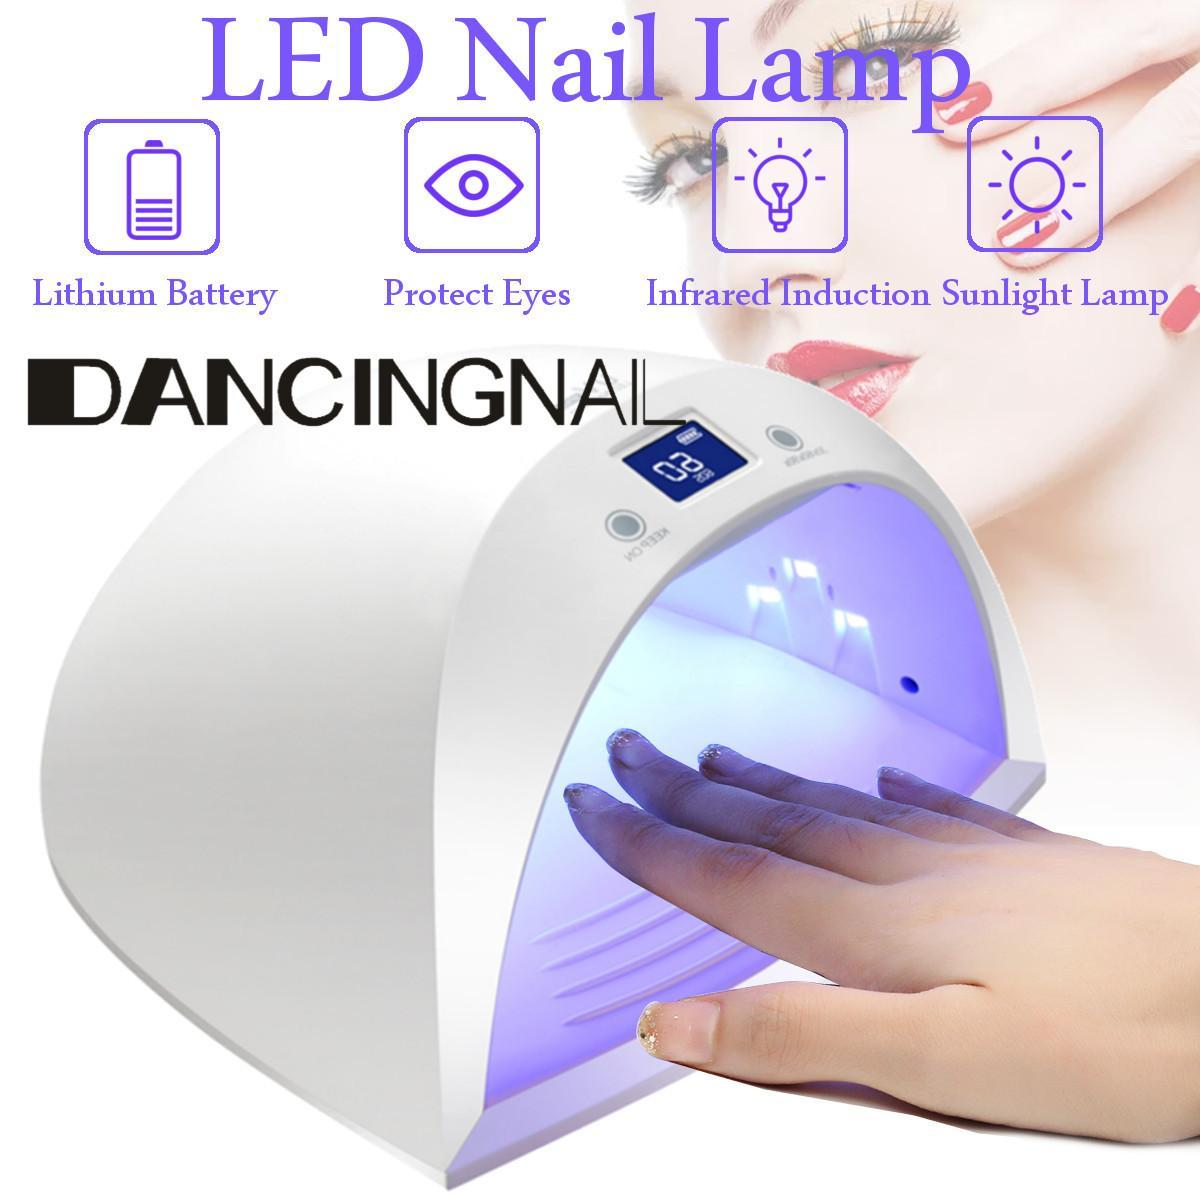 Imported From Abroad Built-in Battery Rechargeable Uv Nail Lamp Gel Nail Polish Dryer Cordless Nail Art Gel Curing Light Nail Led Lamp Nails Art & Tools Nail Dryers